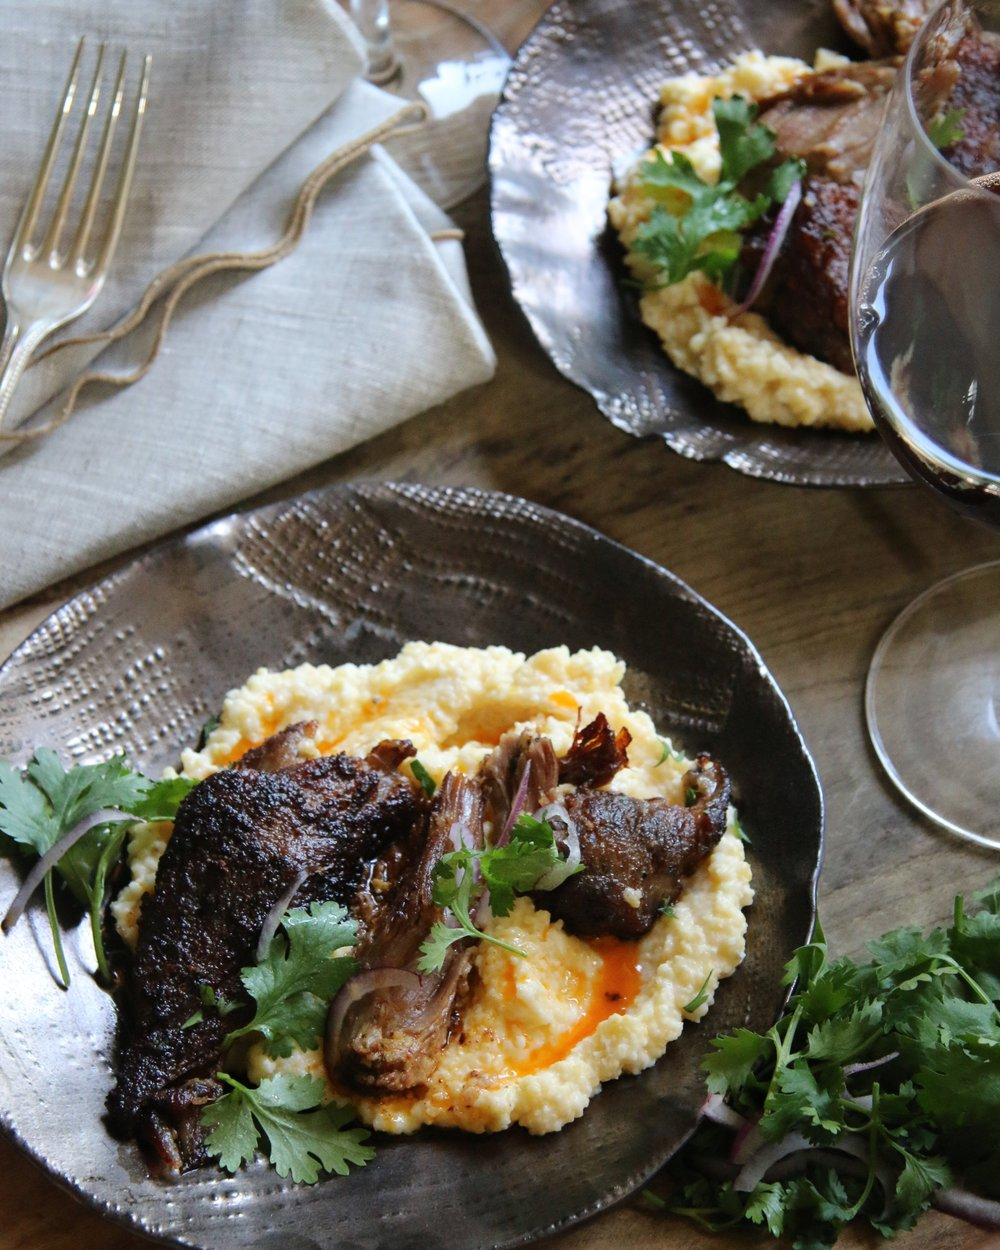 Garlic Studded Pork Roast Creamy Grits2.jpg